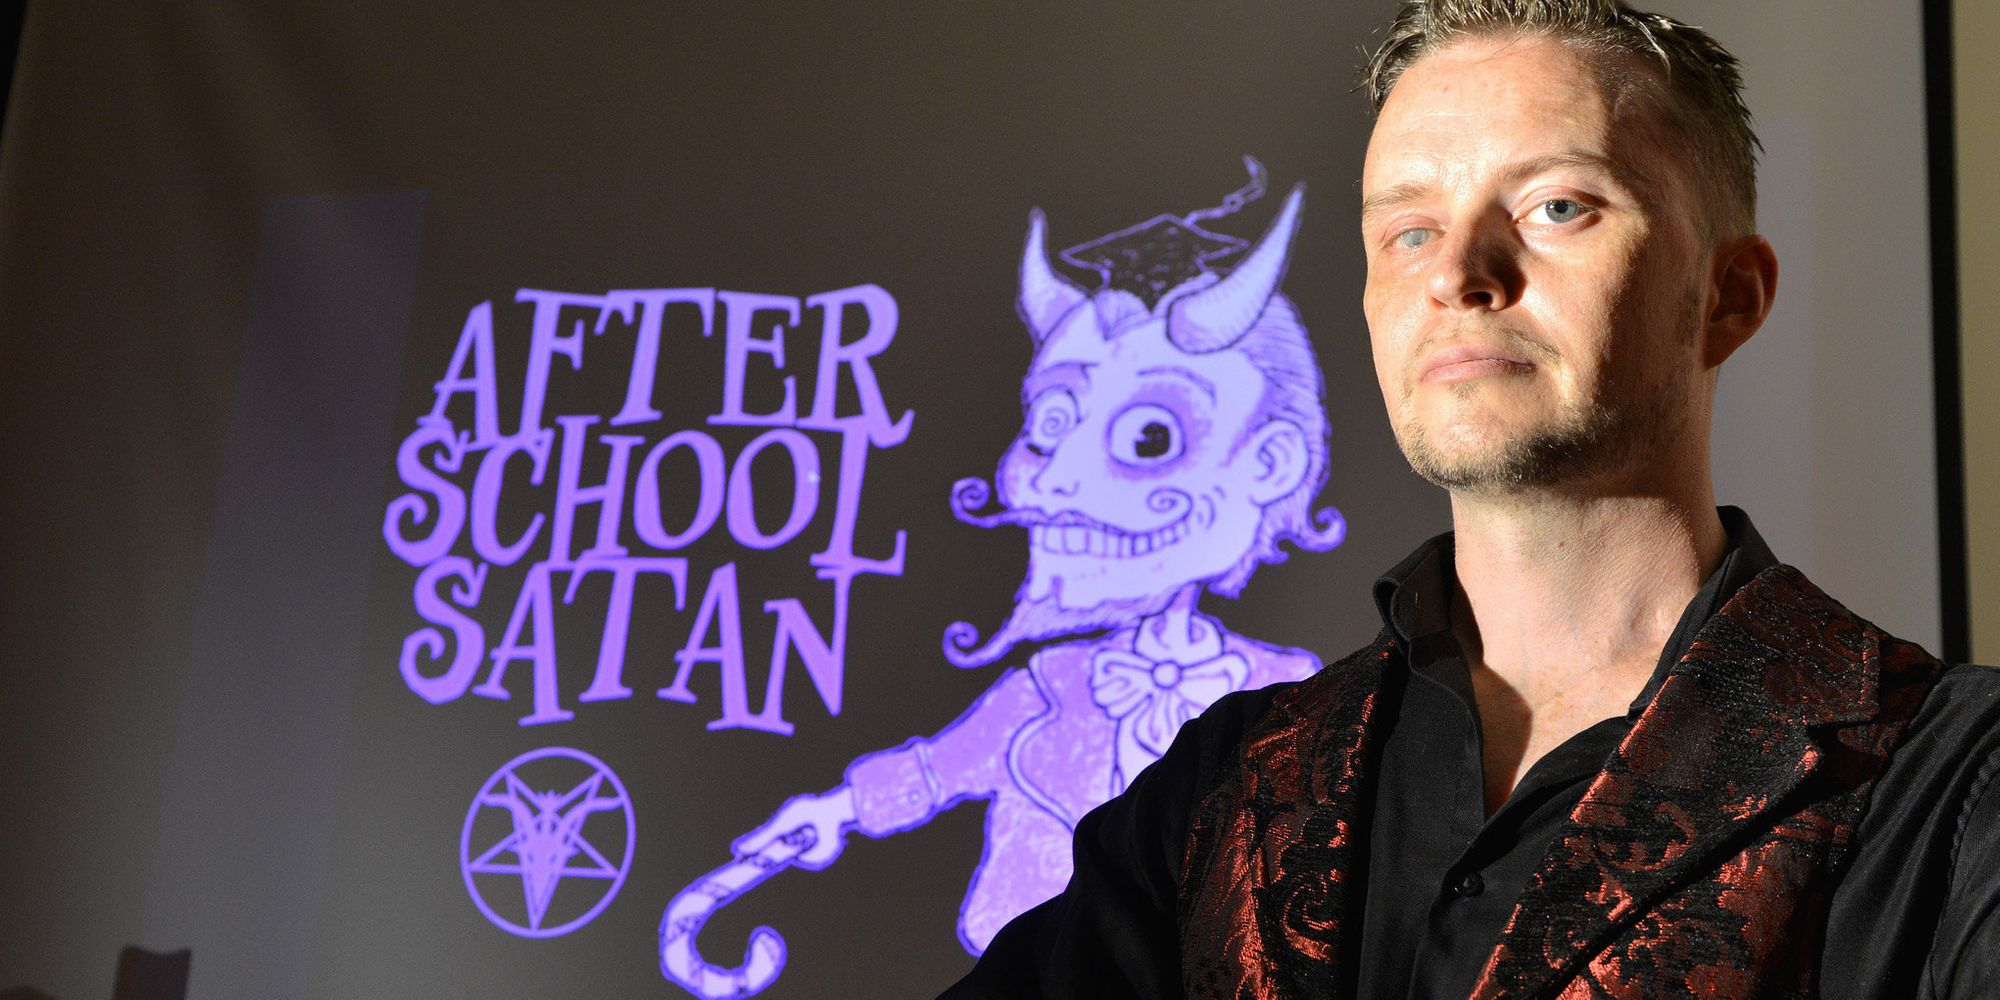 Who is behind America's After-School Satan clubs?